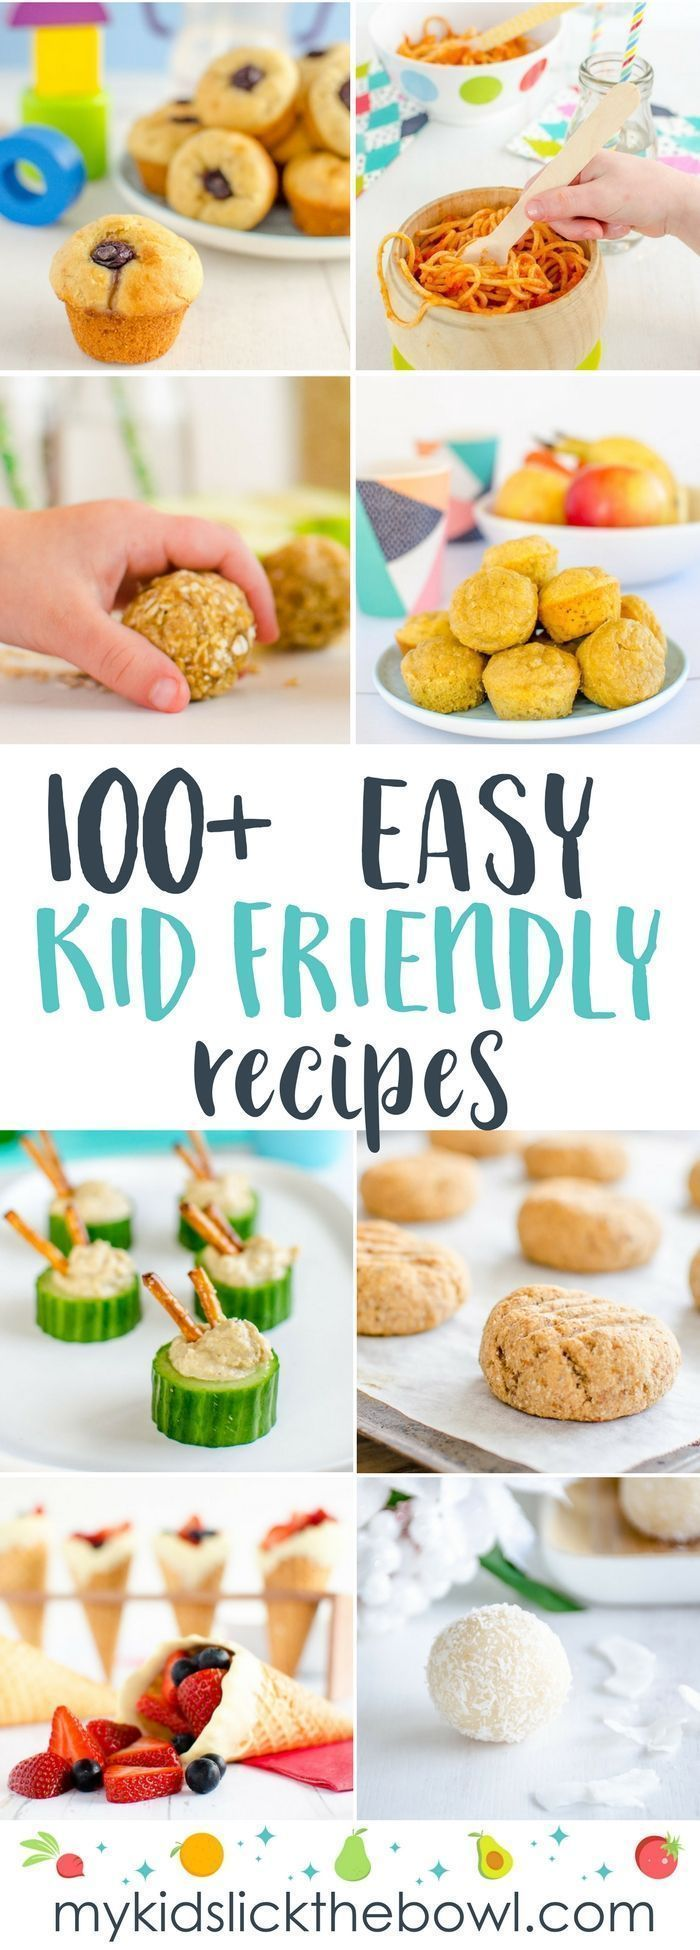 A great collection of kid-approved recipes! images